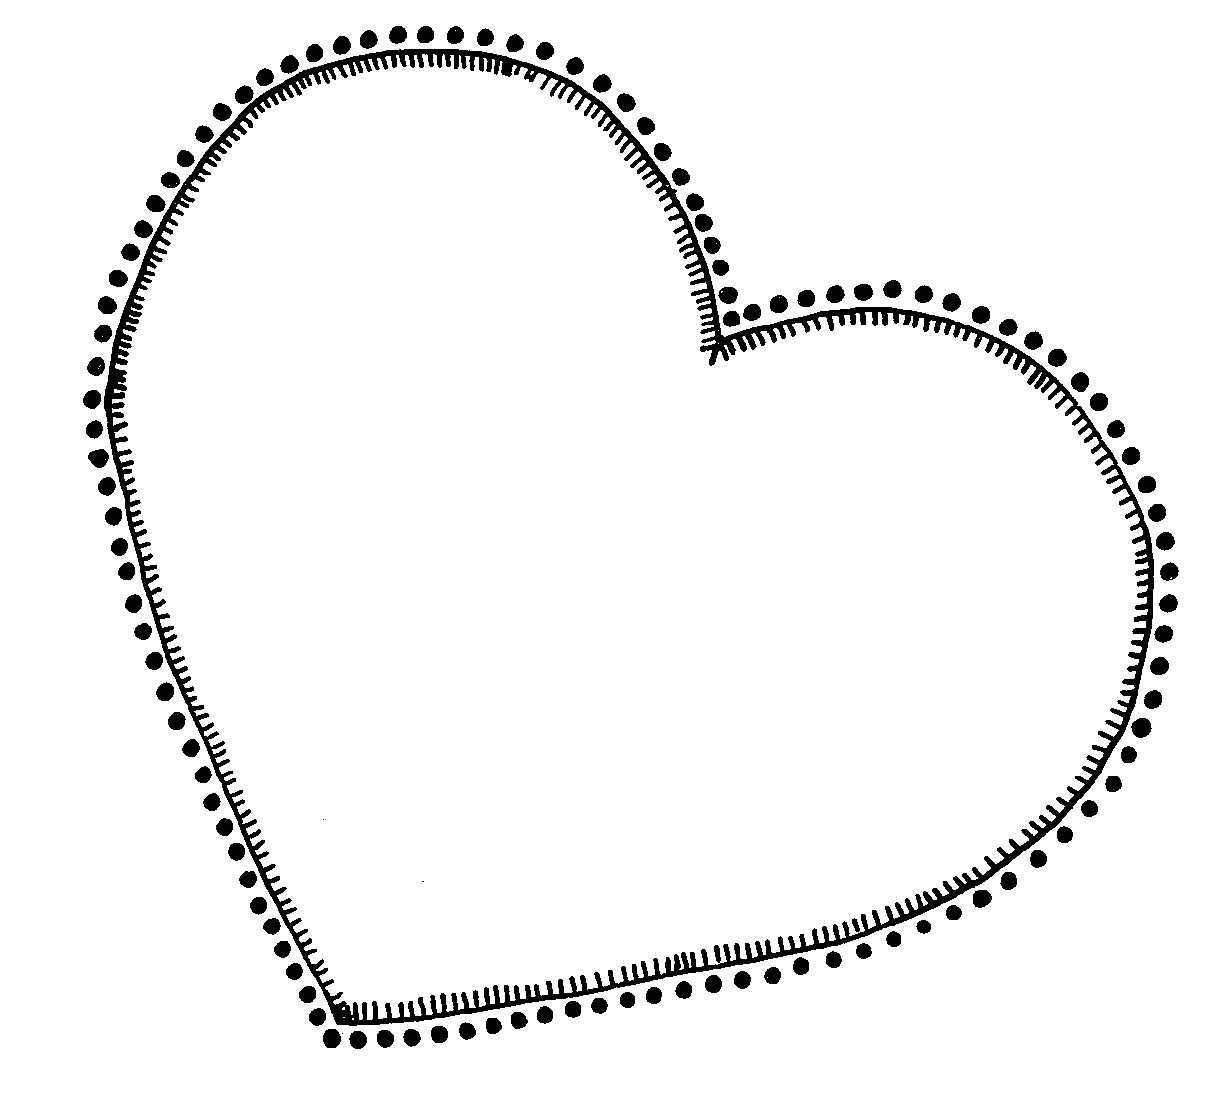 Outline hearts free clipart clipart library stock Clip Art Heart Outline | Clipart Panda - Free Clipart Images clipart library stock